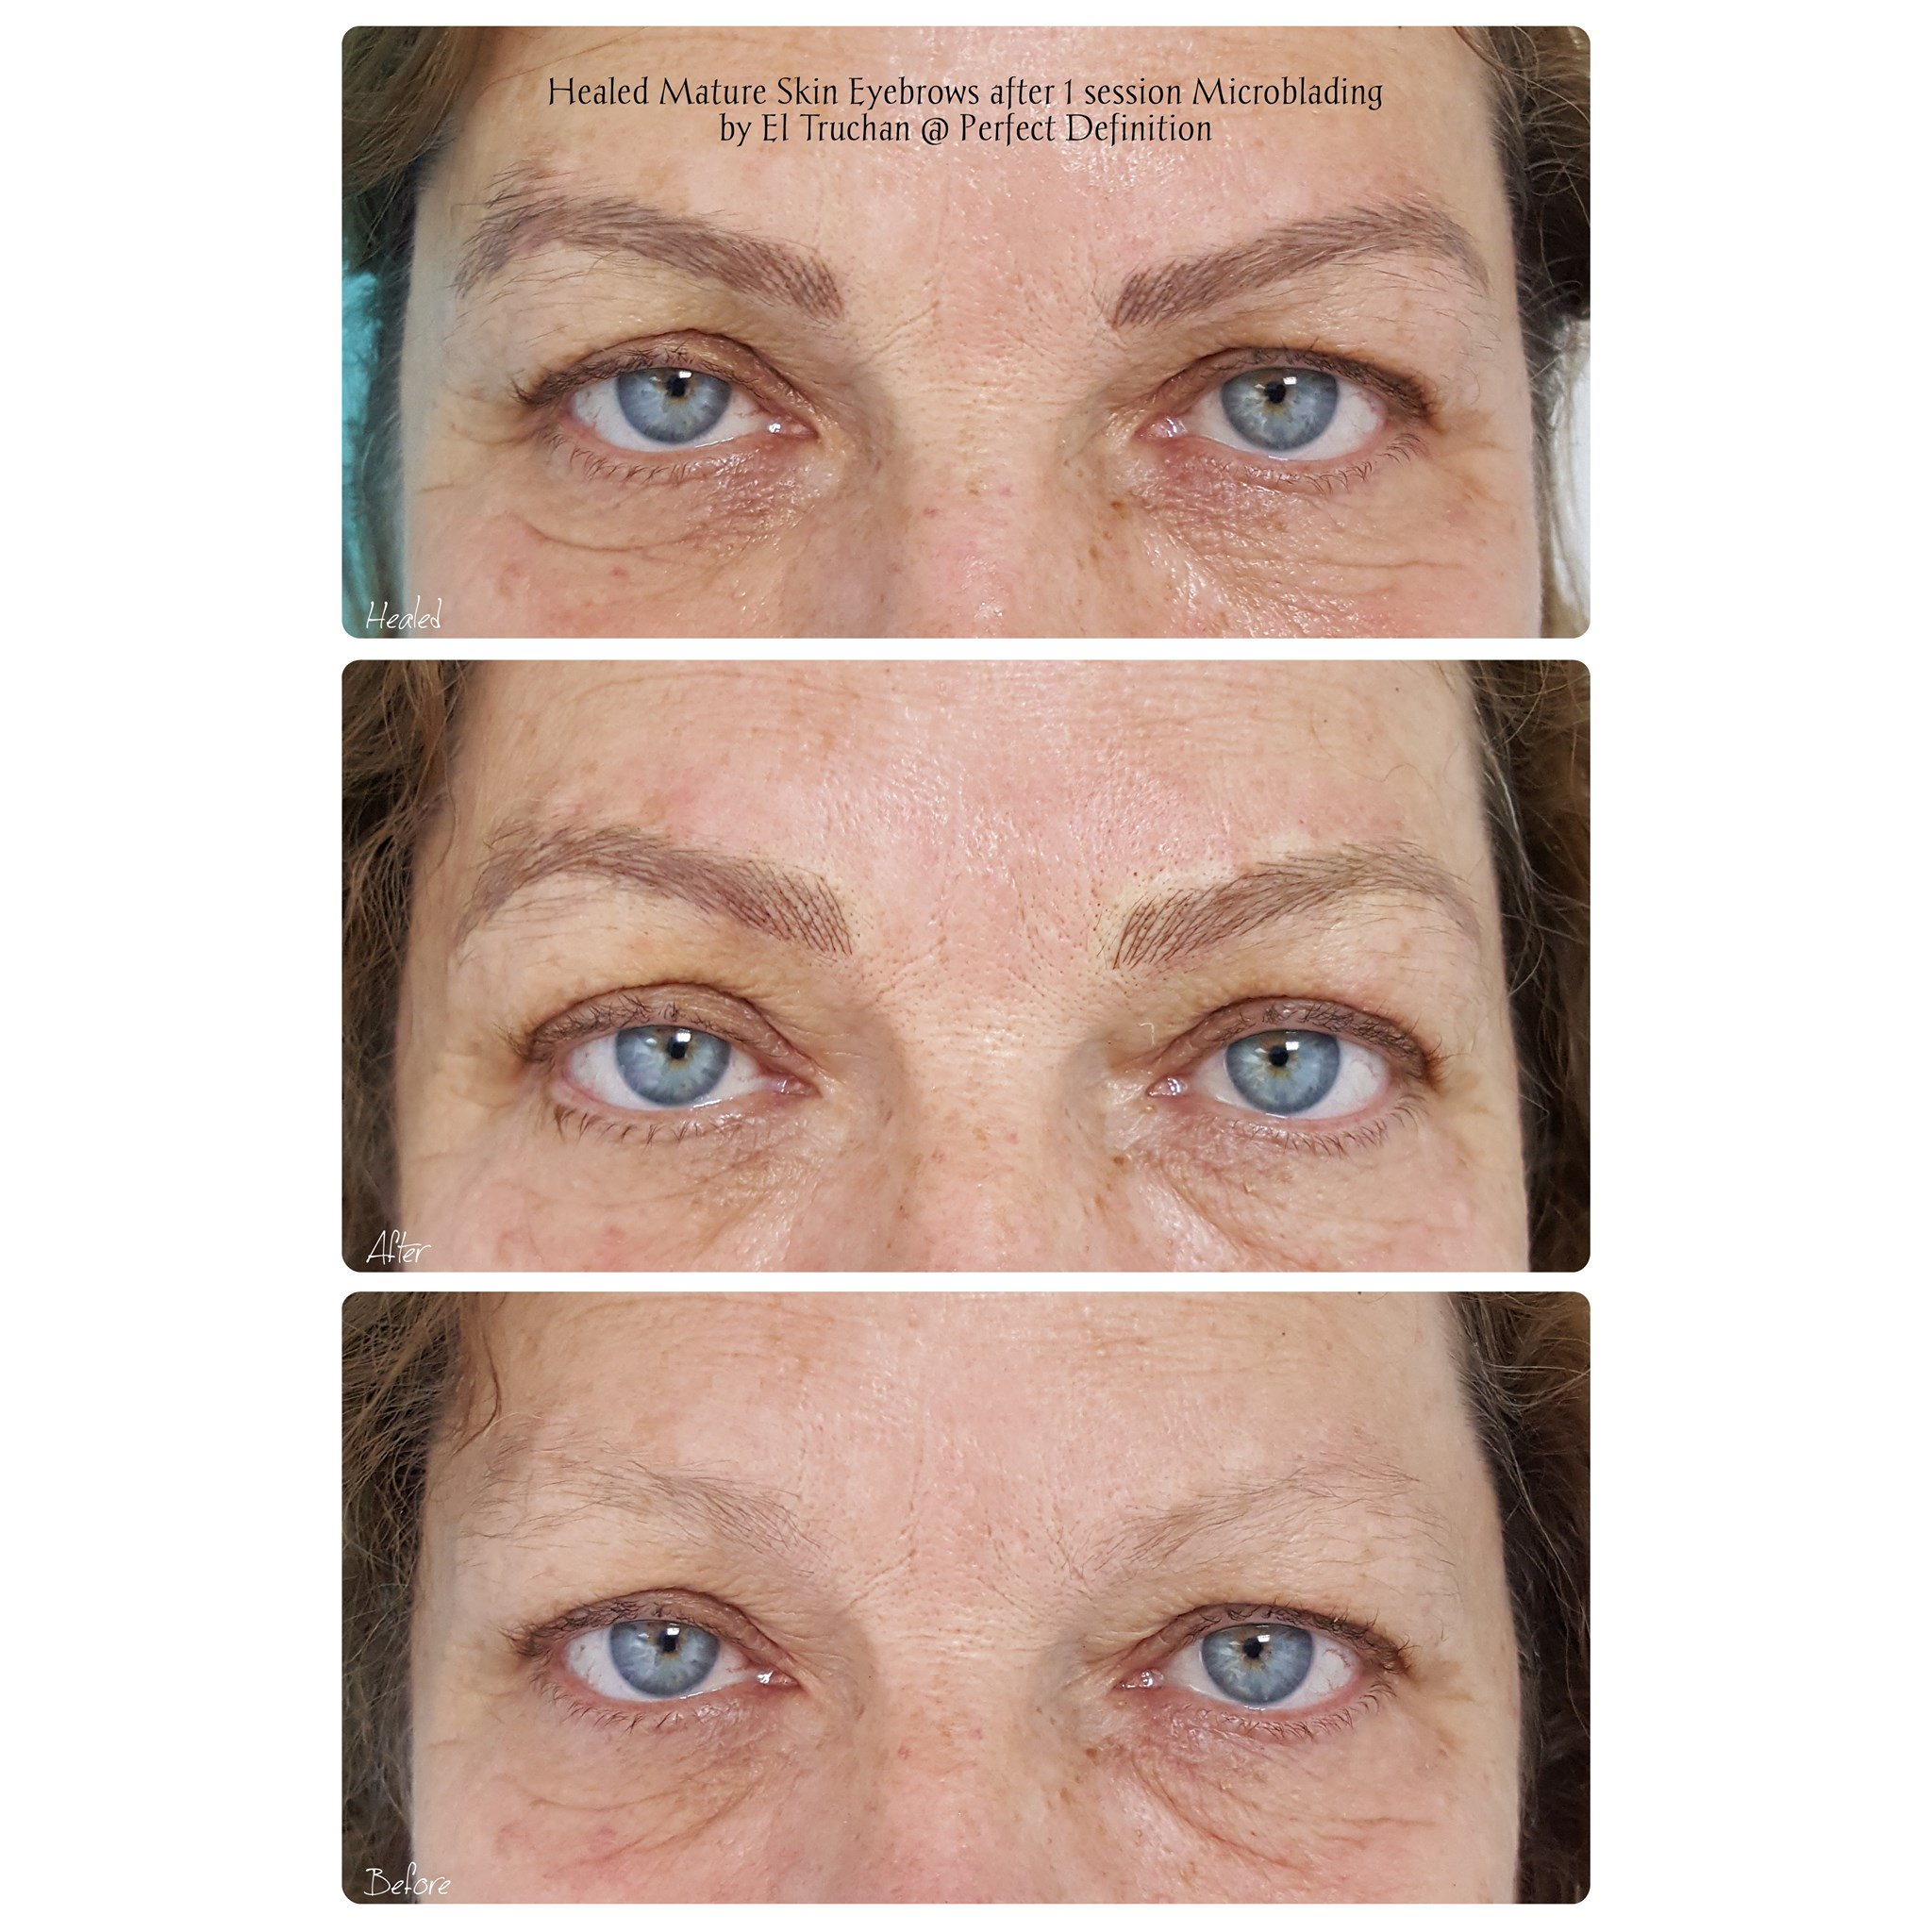 Healed Mature Skin Eyebrows after 1 sess